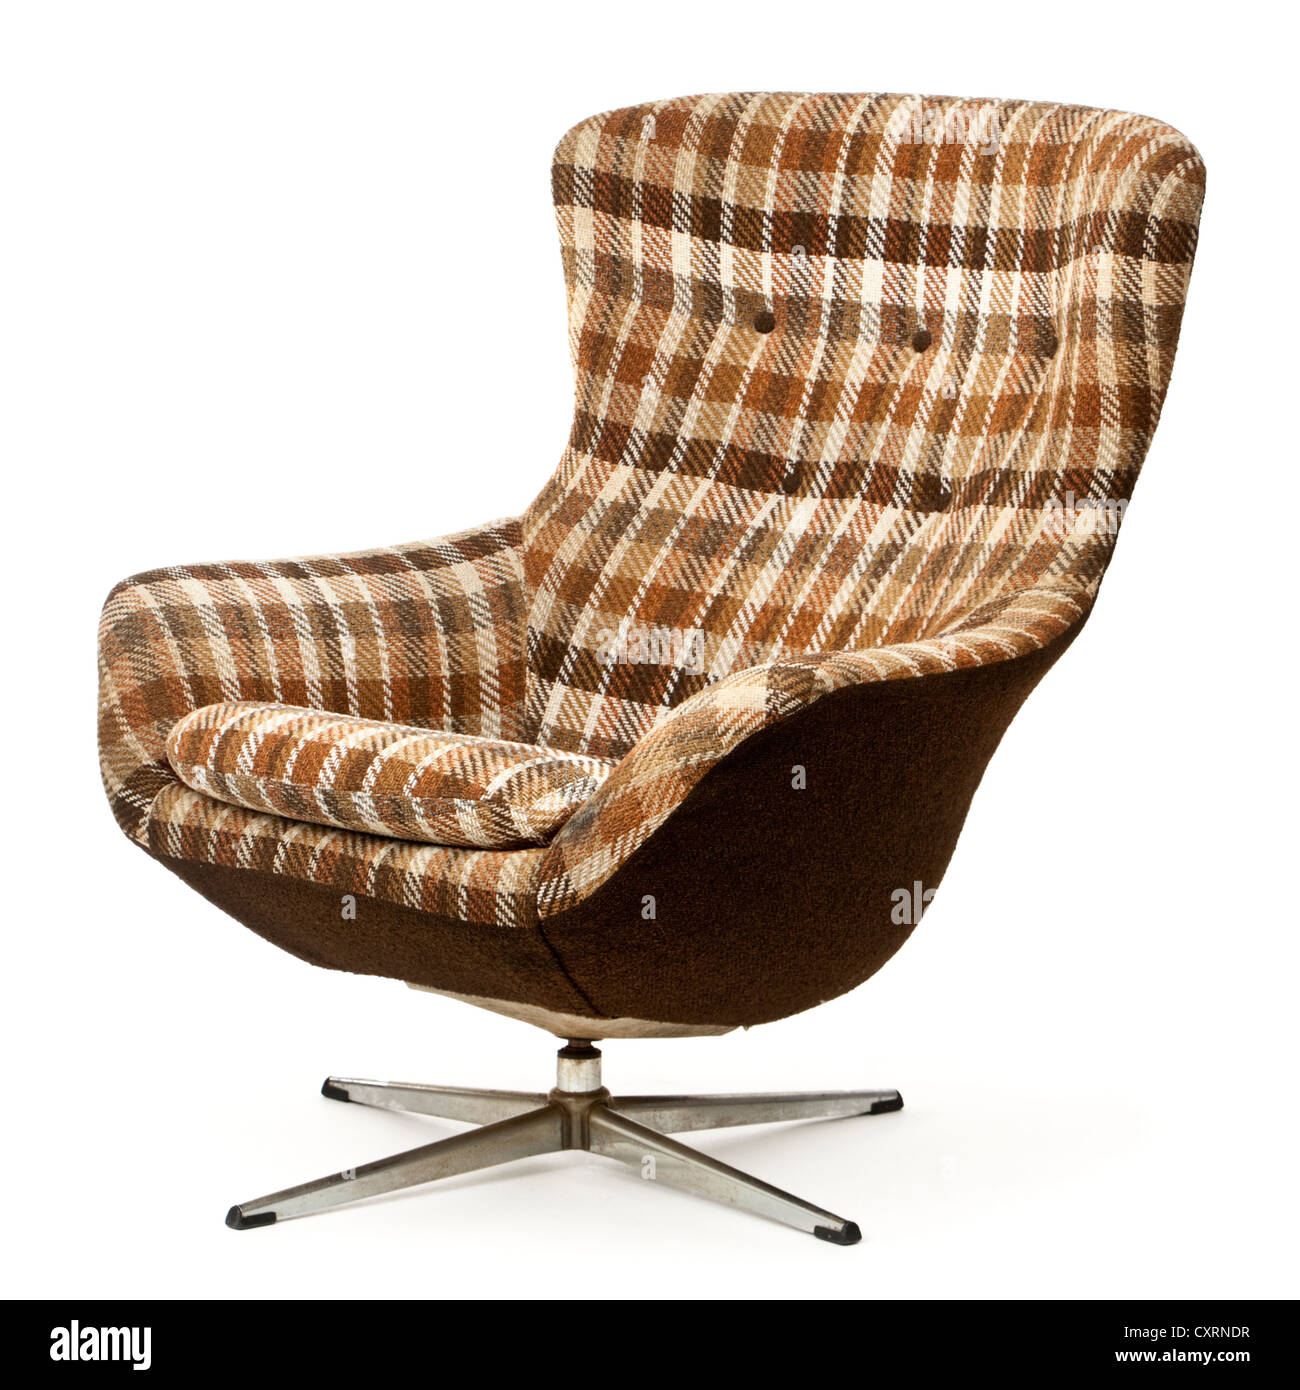 Upholstered Swivel Chairs Vintage Upholstered Swivel And Tilt Egg Chair Stock Photo